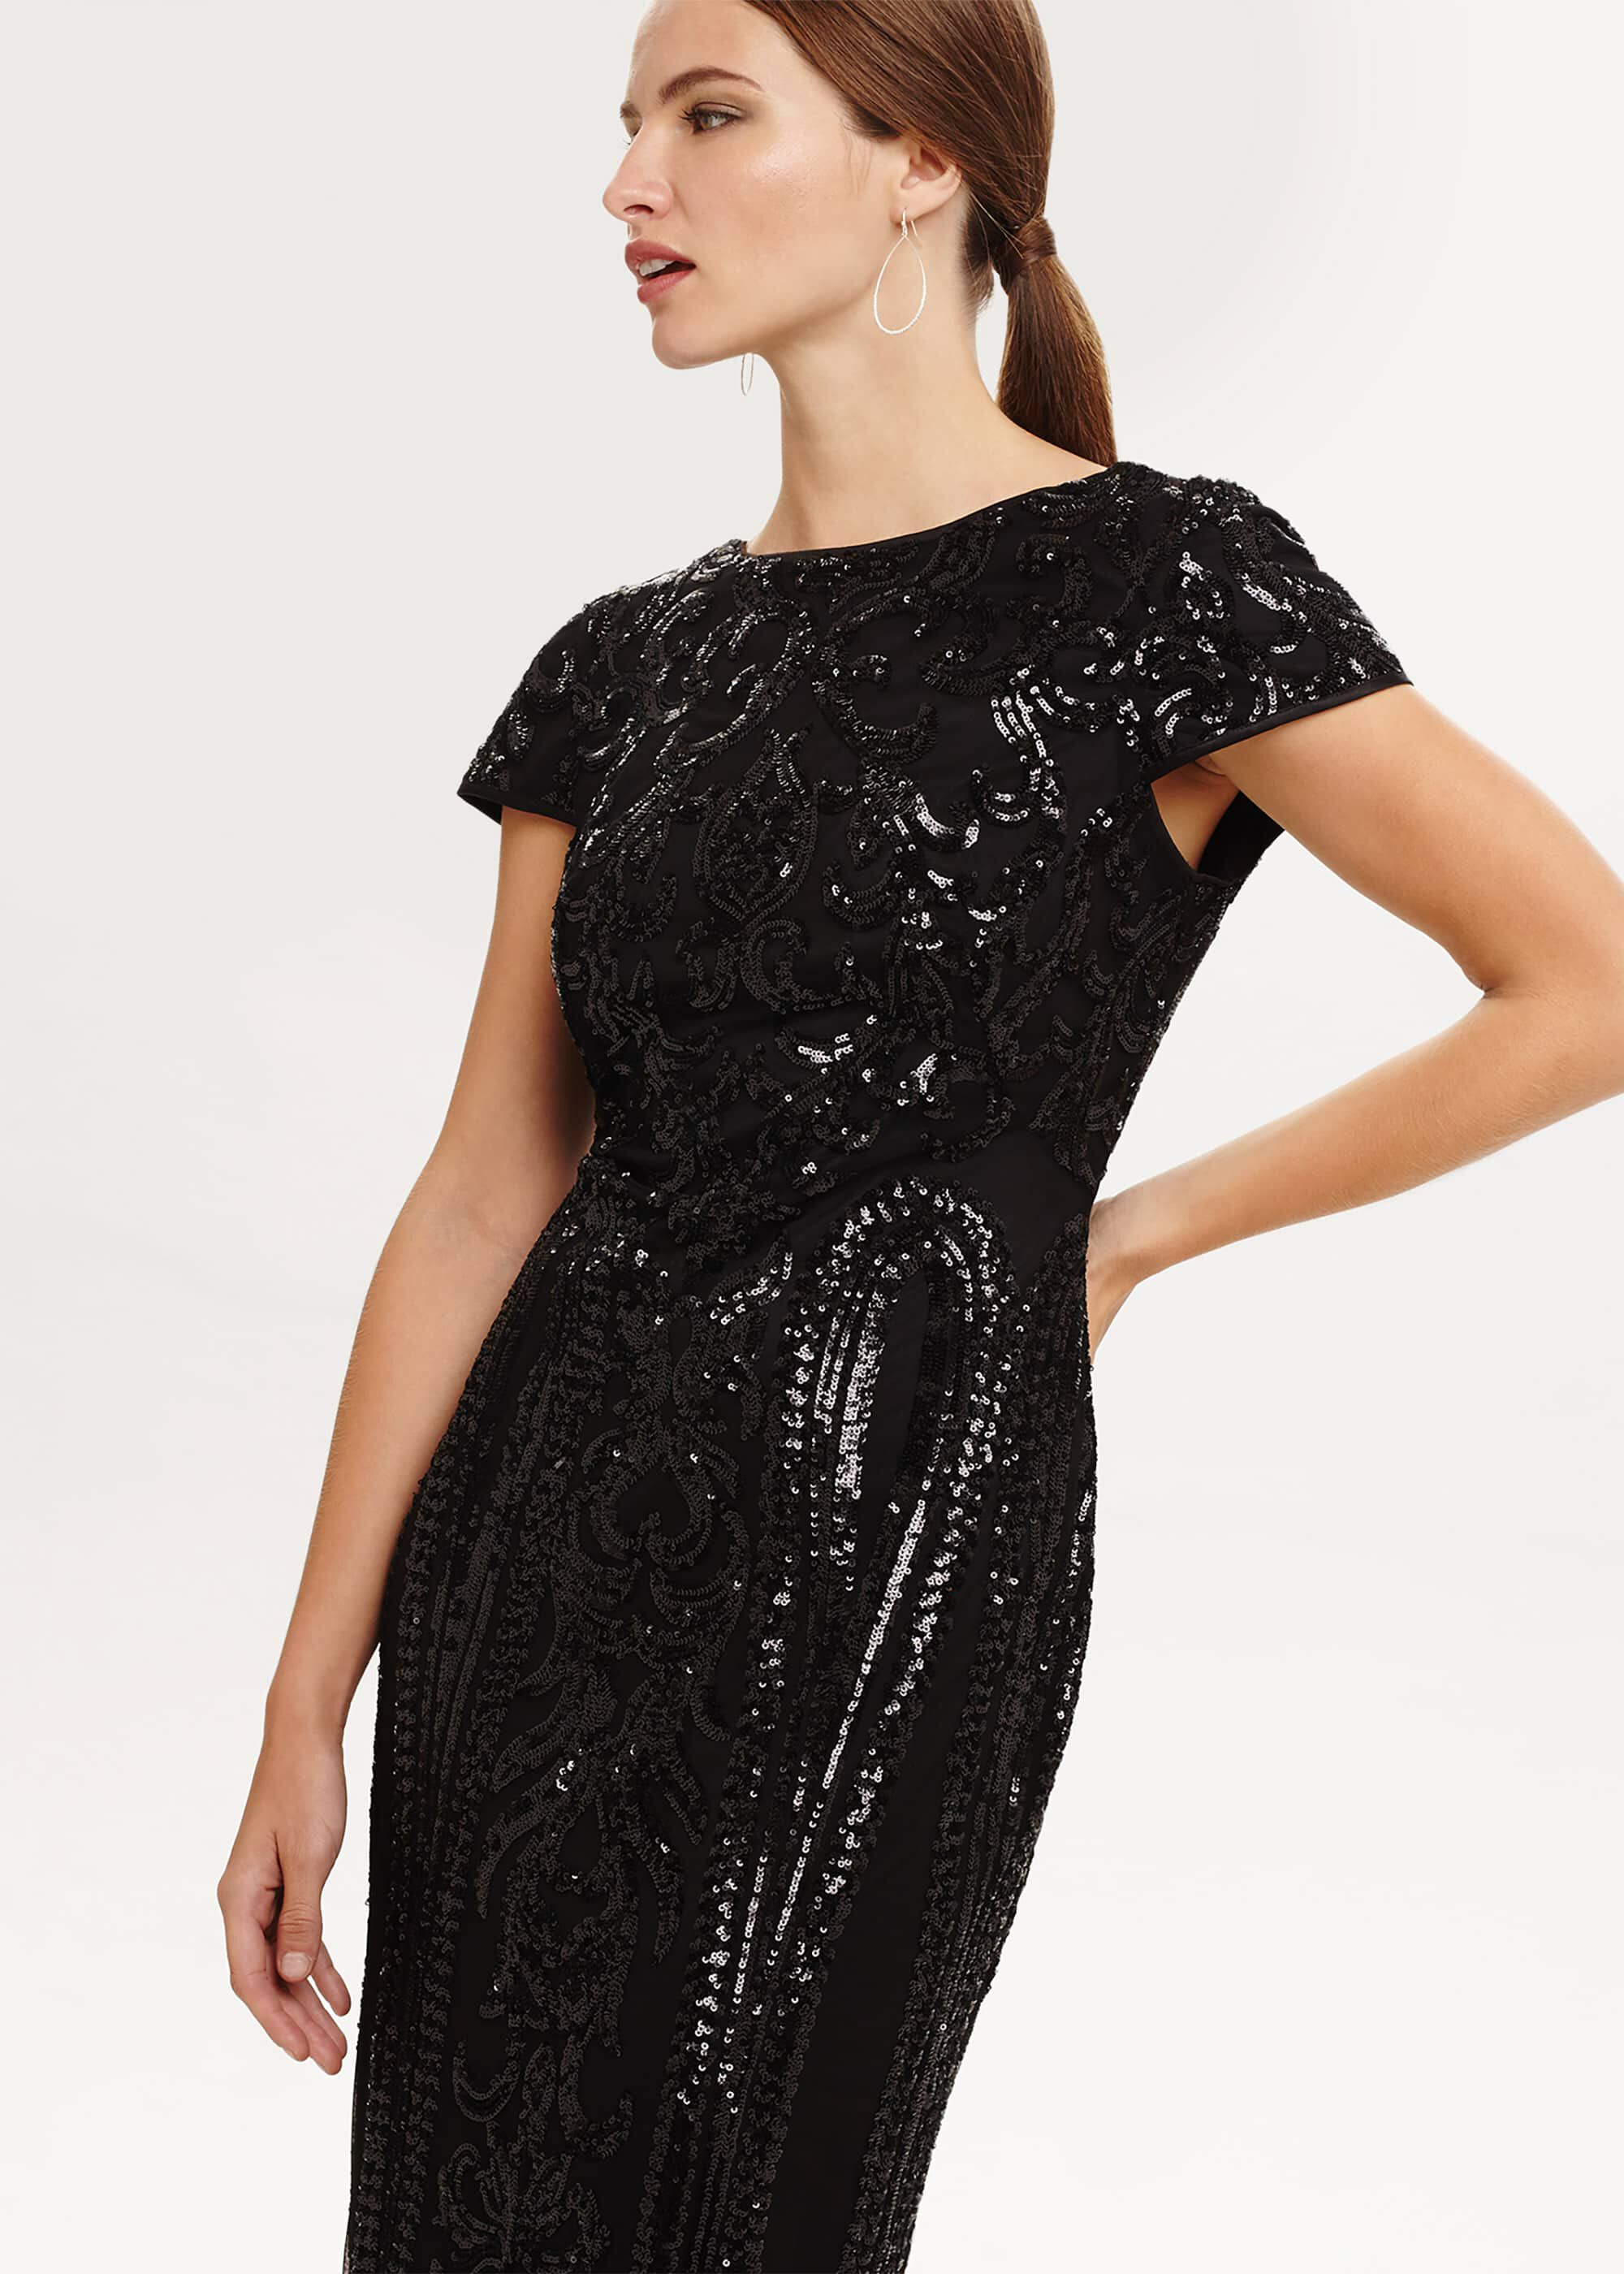 Phase Eight Malory Sequined Midi Dress, Black, Fitted